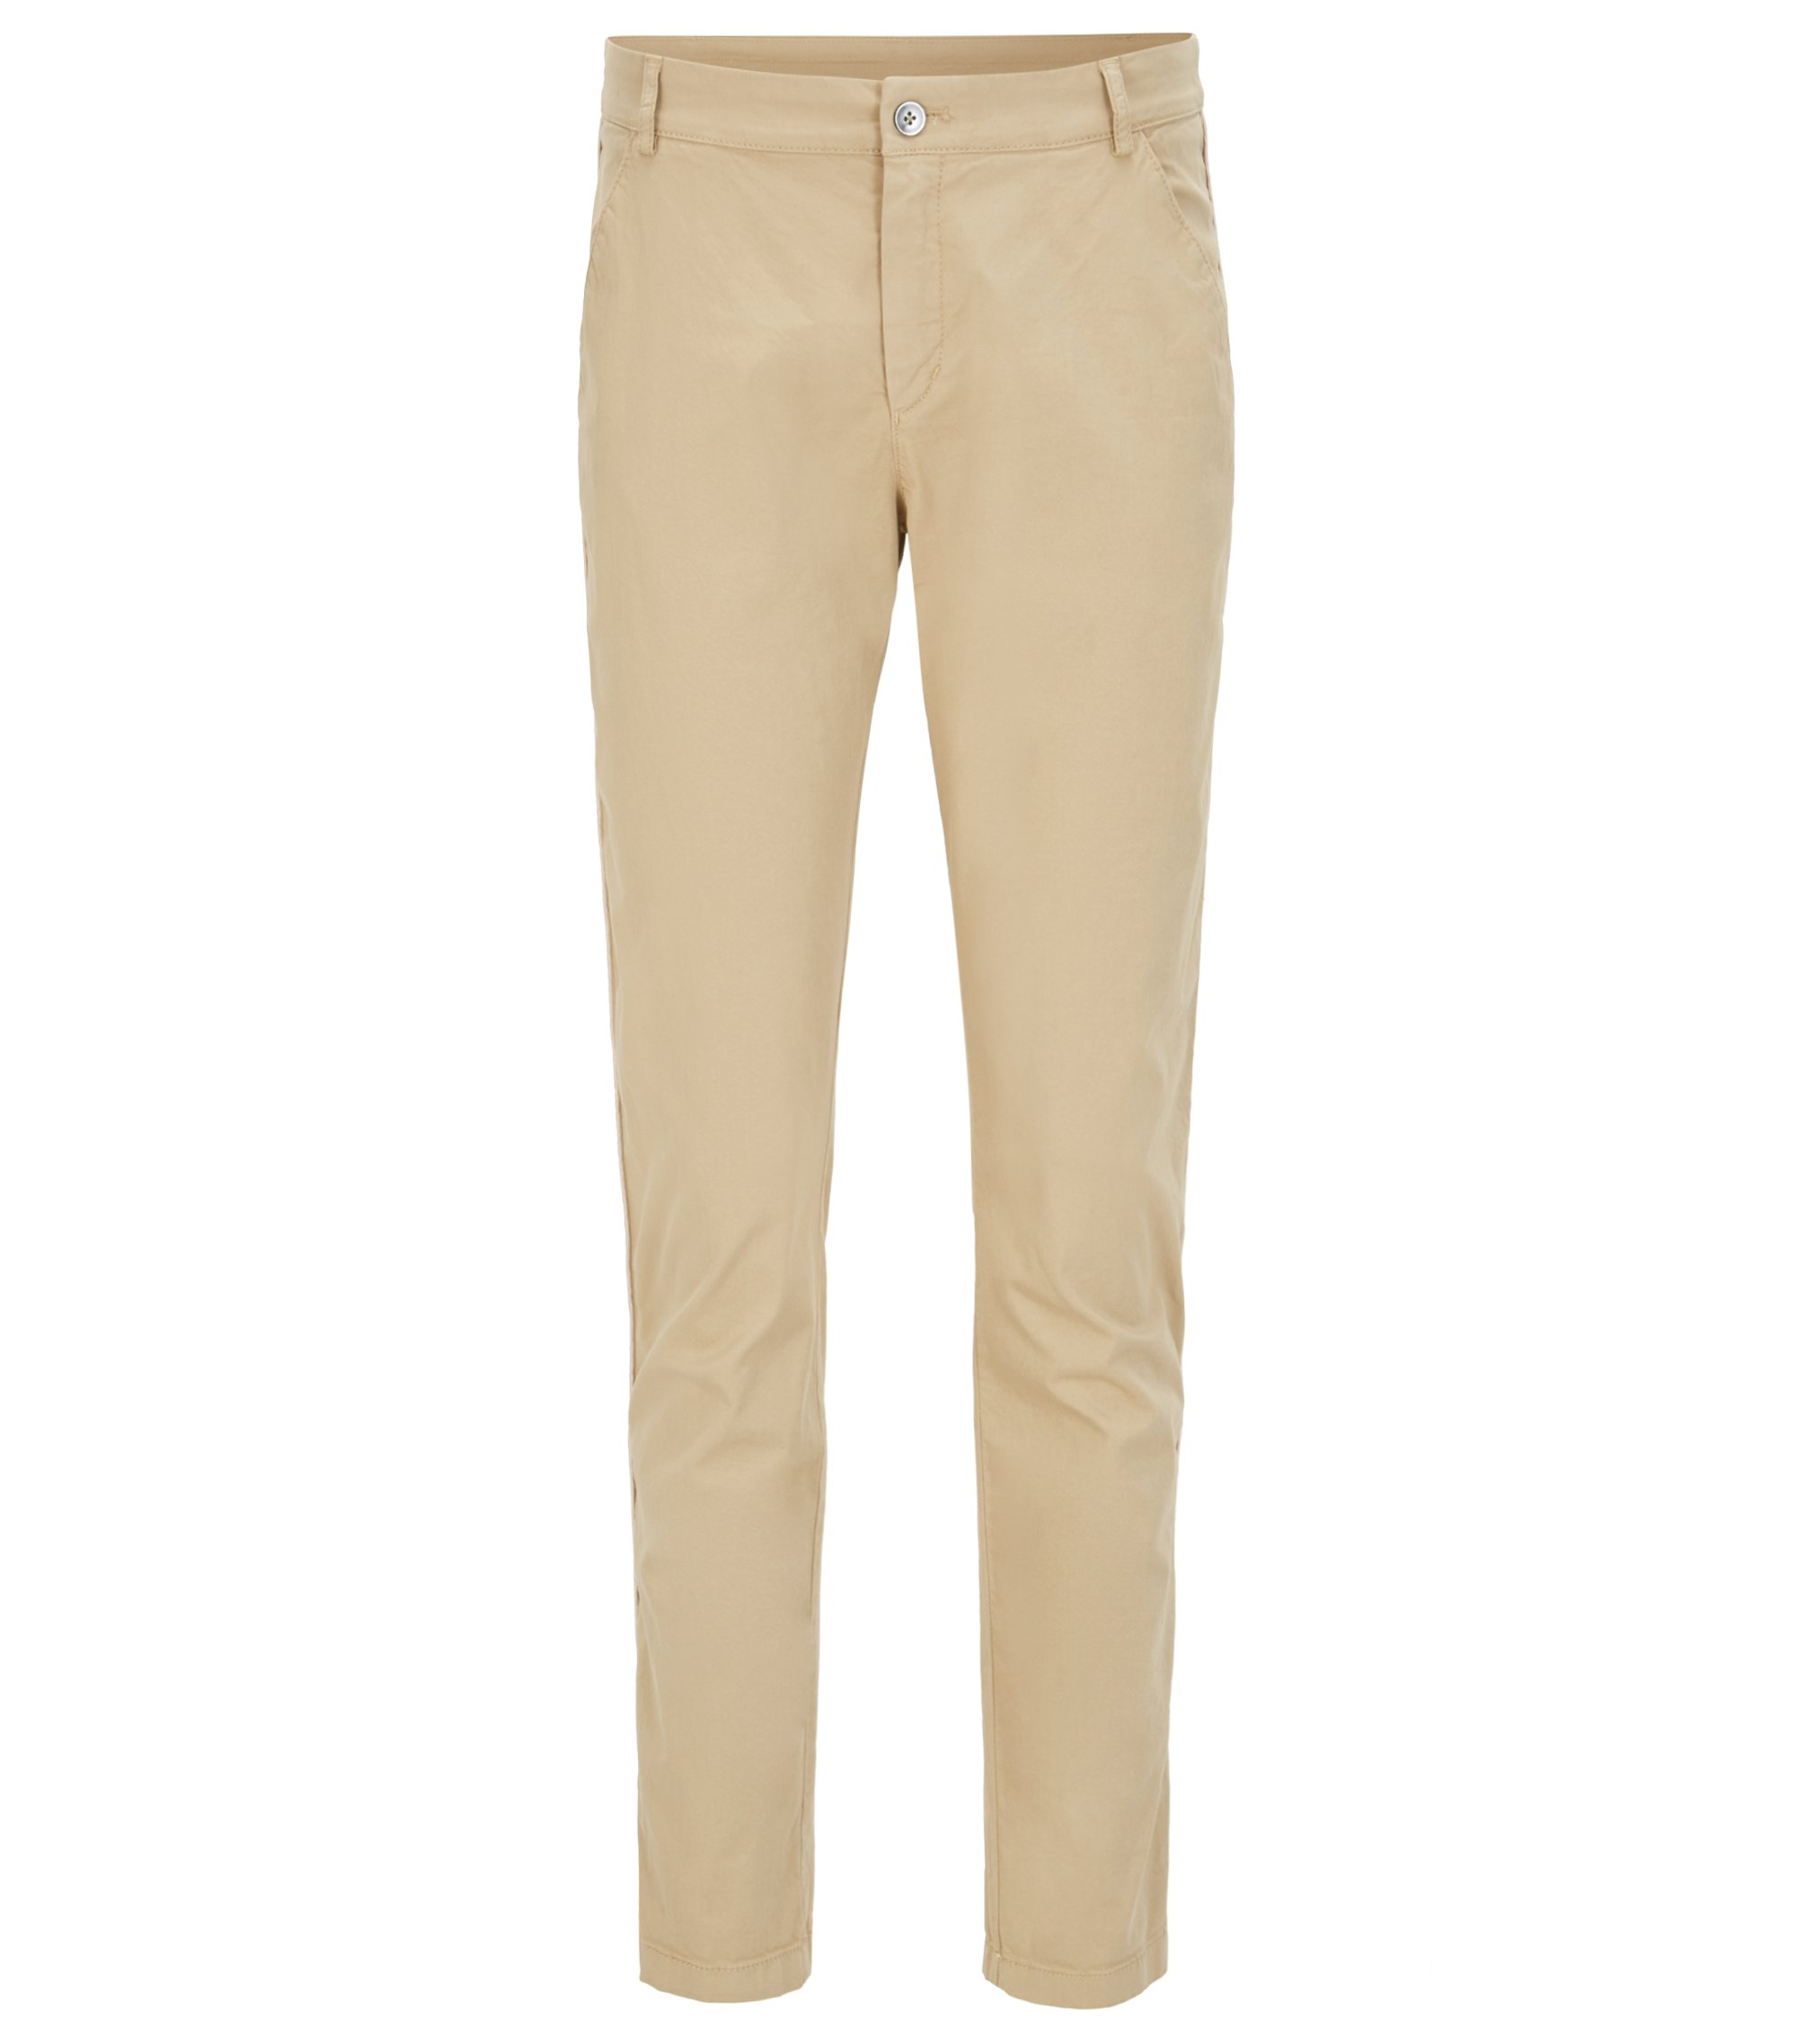 Pantalon chino Relaxed Fit en coton stretch, Beige